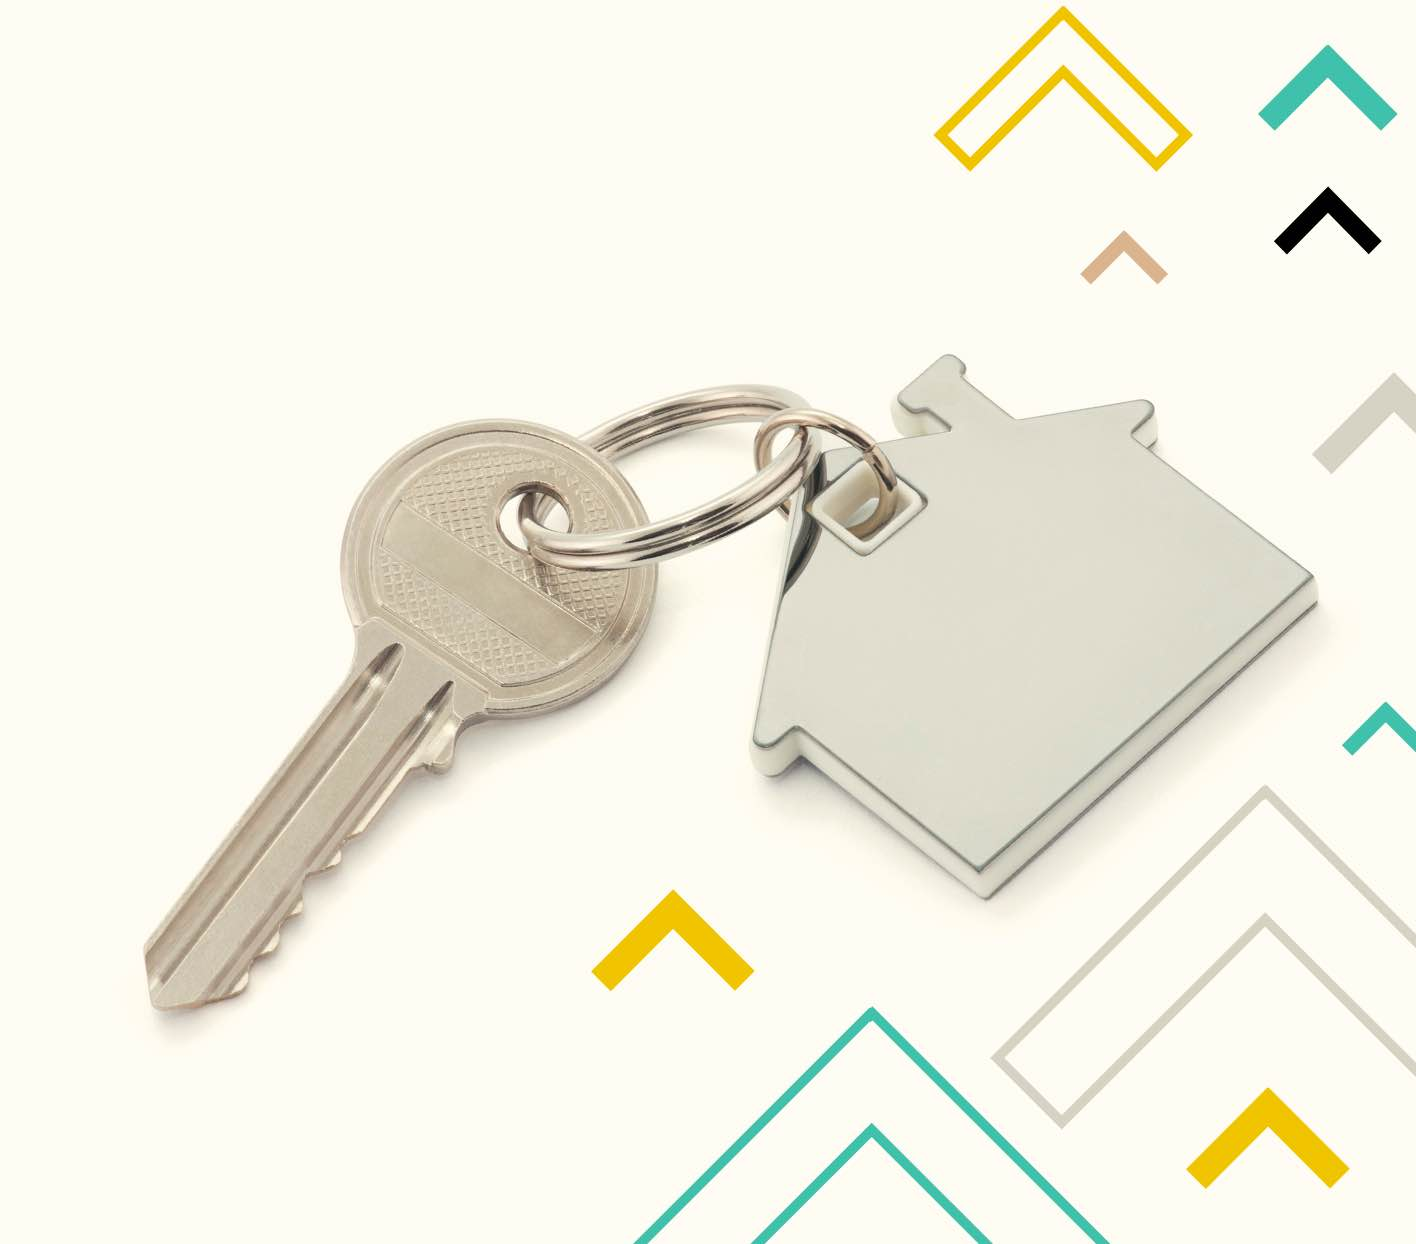 key with key chain of a house